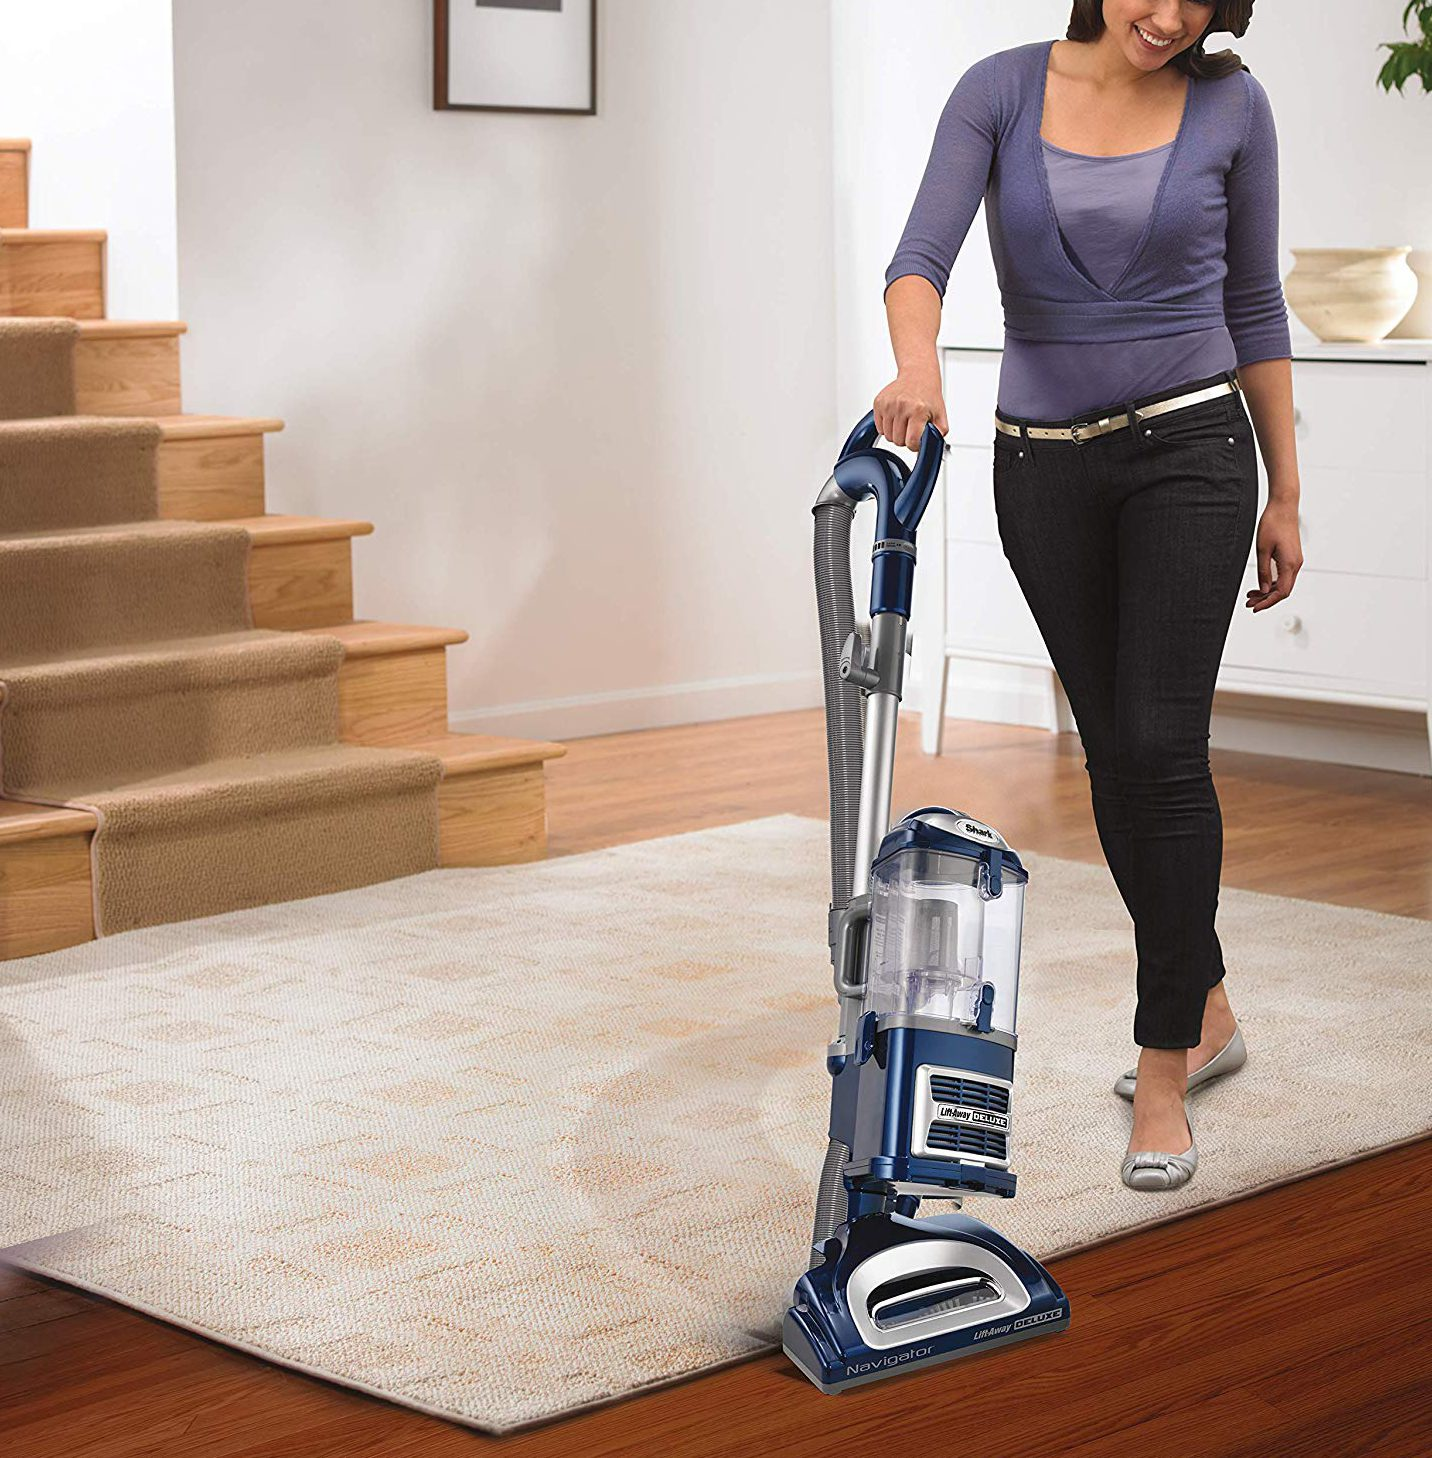 An Upright Vacuum From Shark